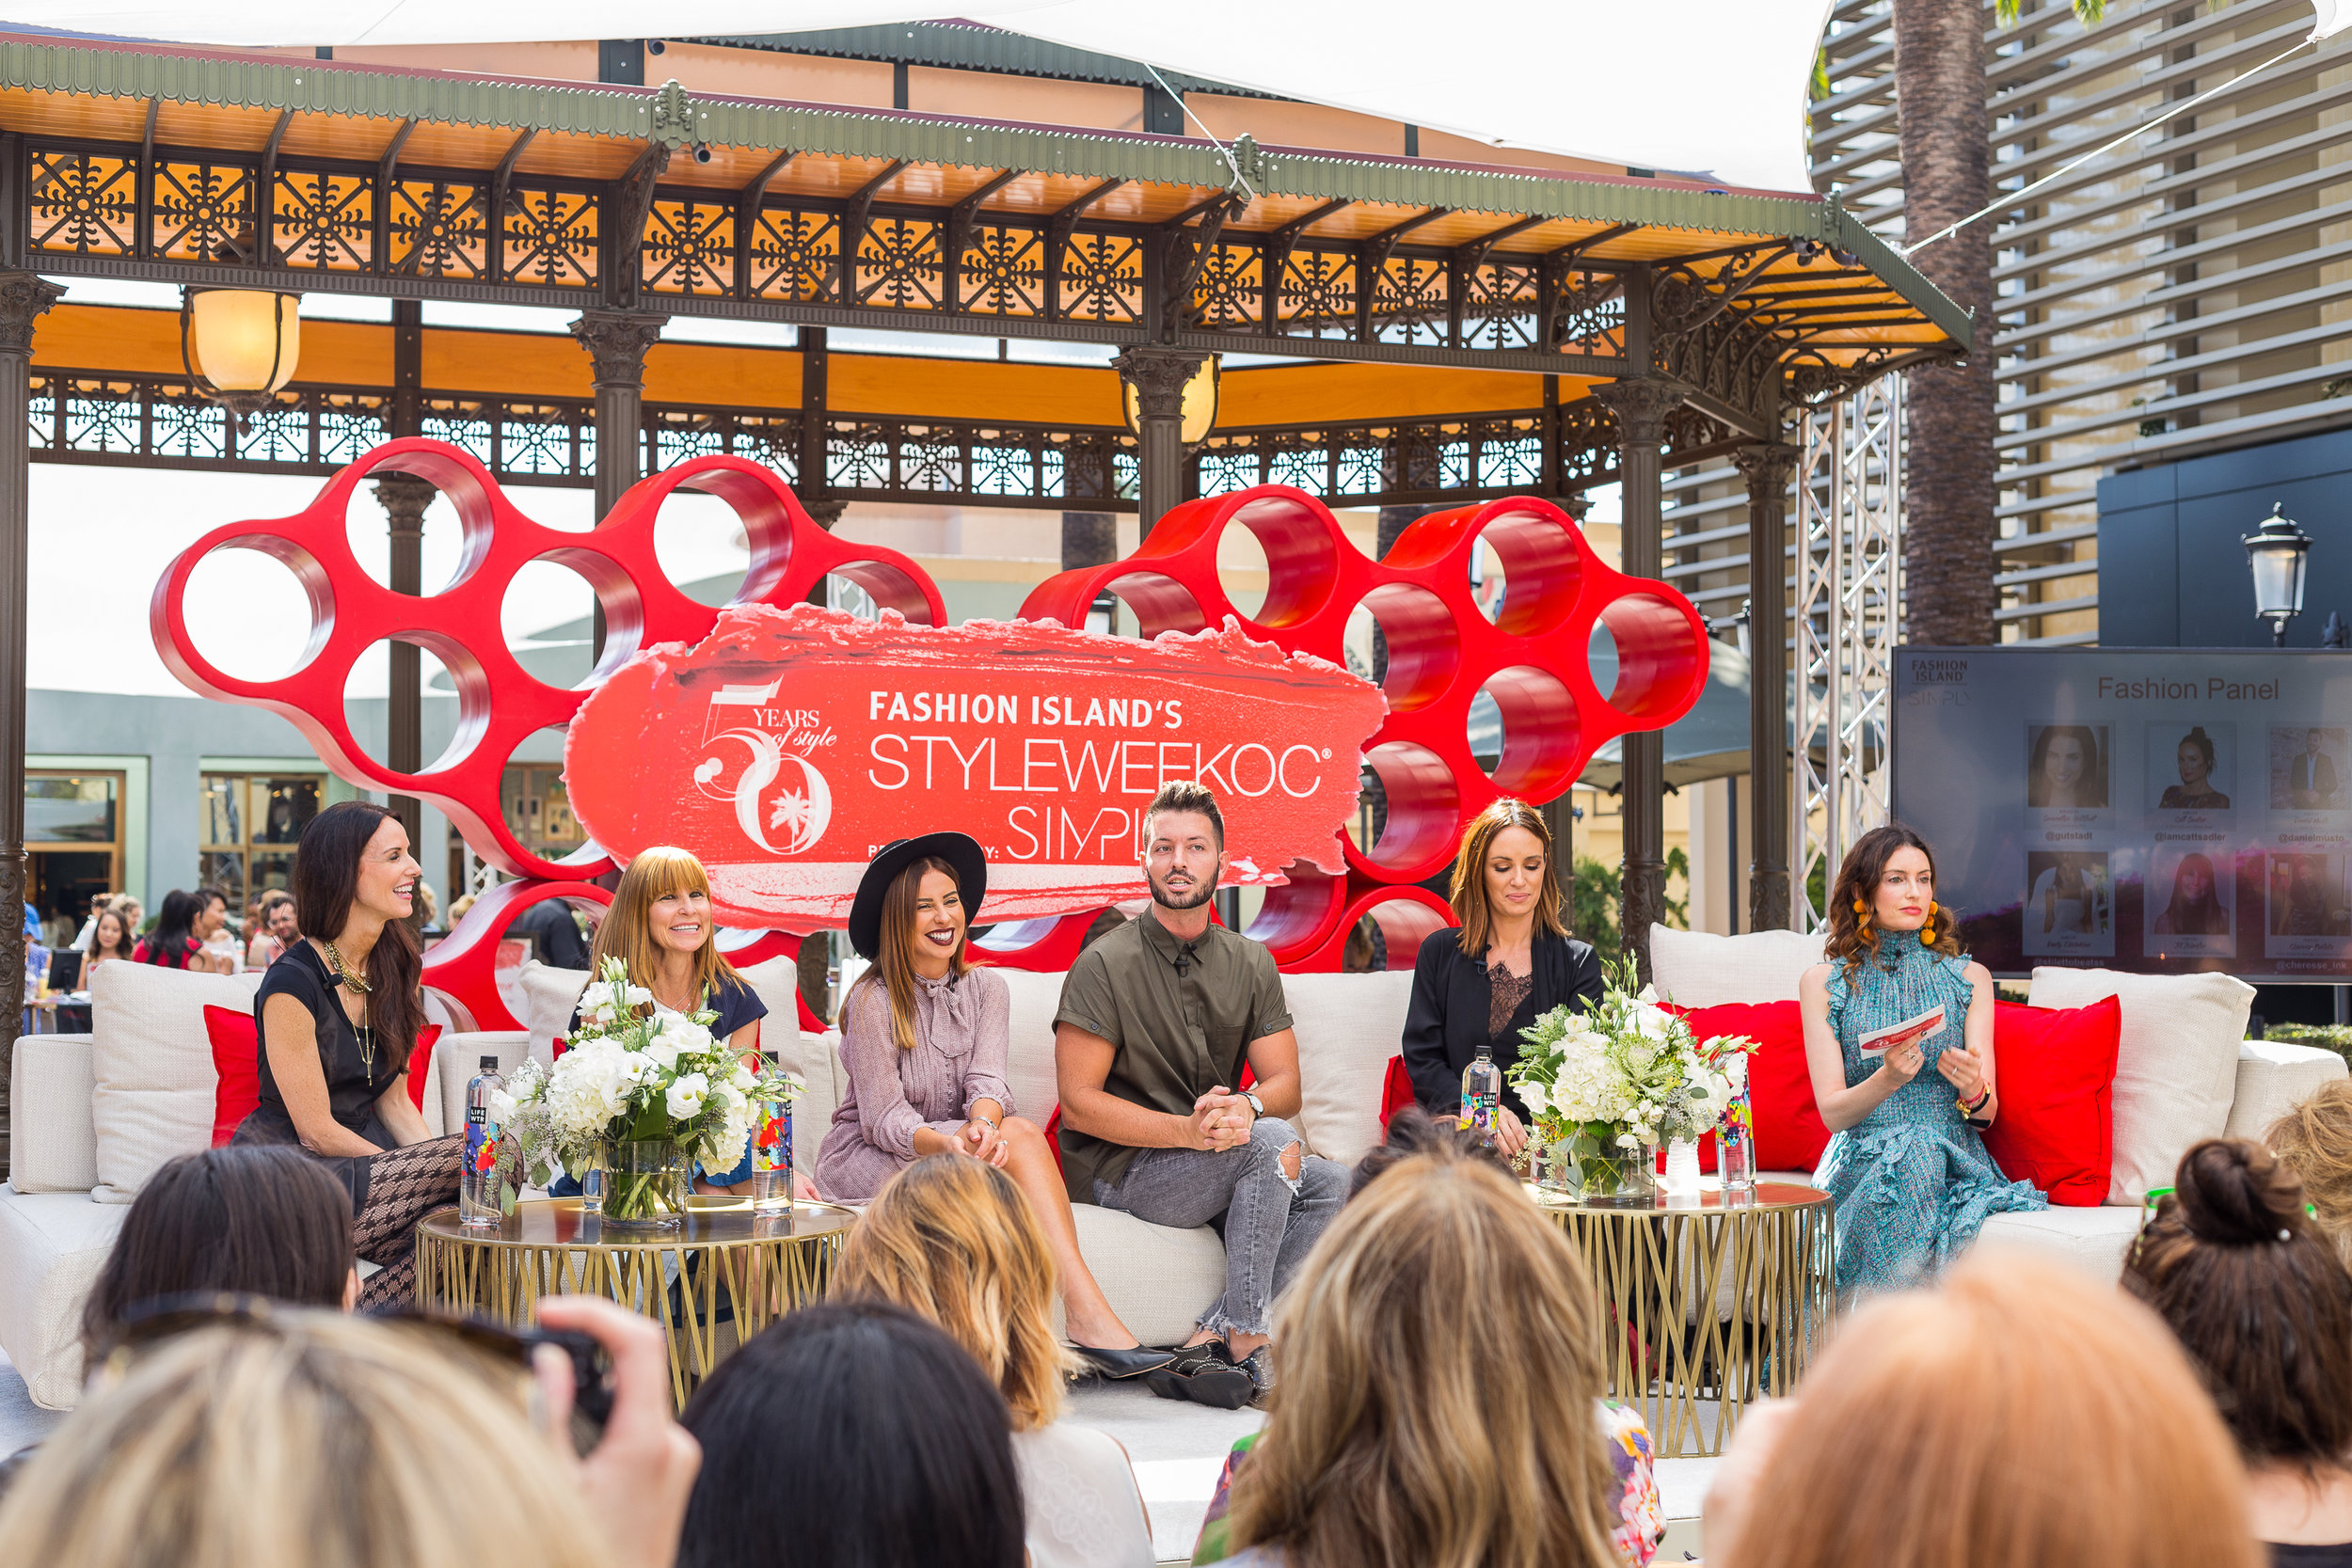 FROM LEFT: Neiman Marcus Public Relations Manager Cheresse Pentella, Nordstrom Merchandise Manager Jill Johnston, fashion blogger Emily Cholakian, celebrity stylist Daniel Musto,  E! News  host and blogger Catt Sadler, and NYLON contributing editor Samantha Gutstadt